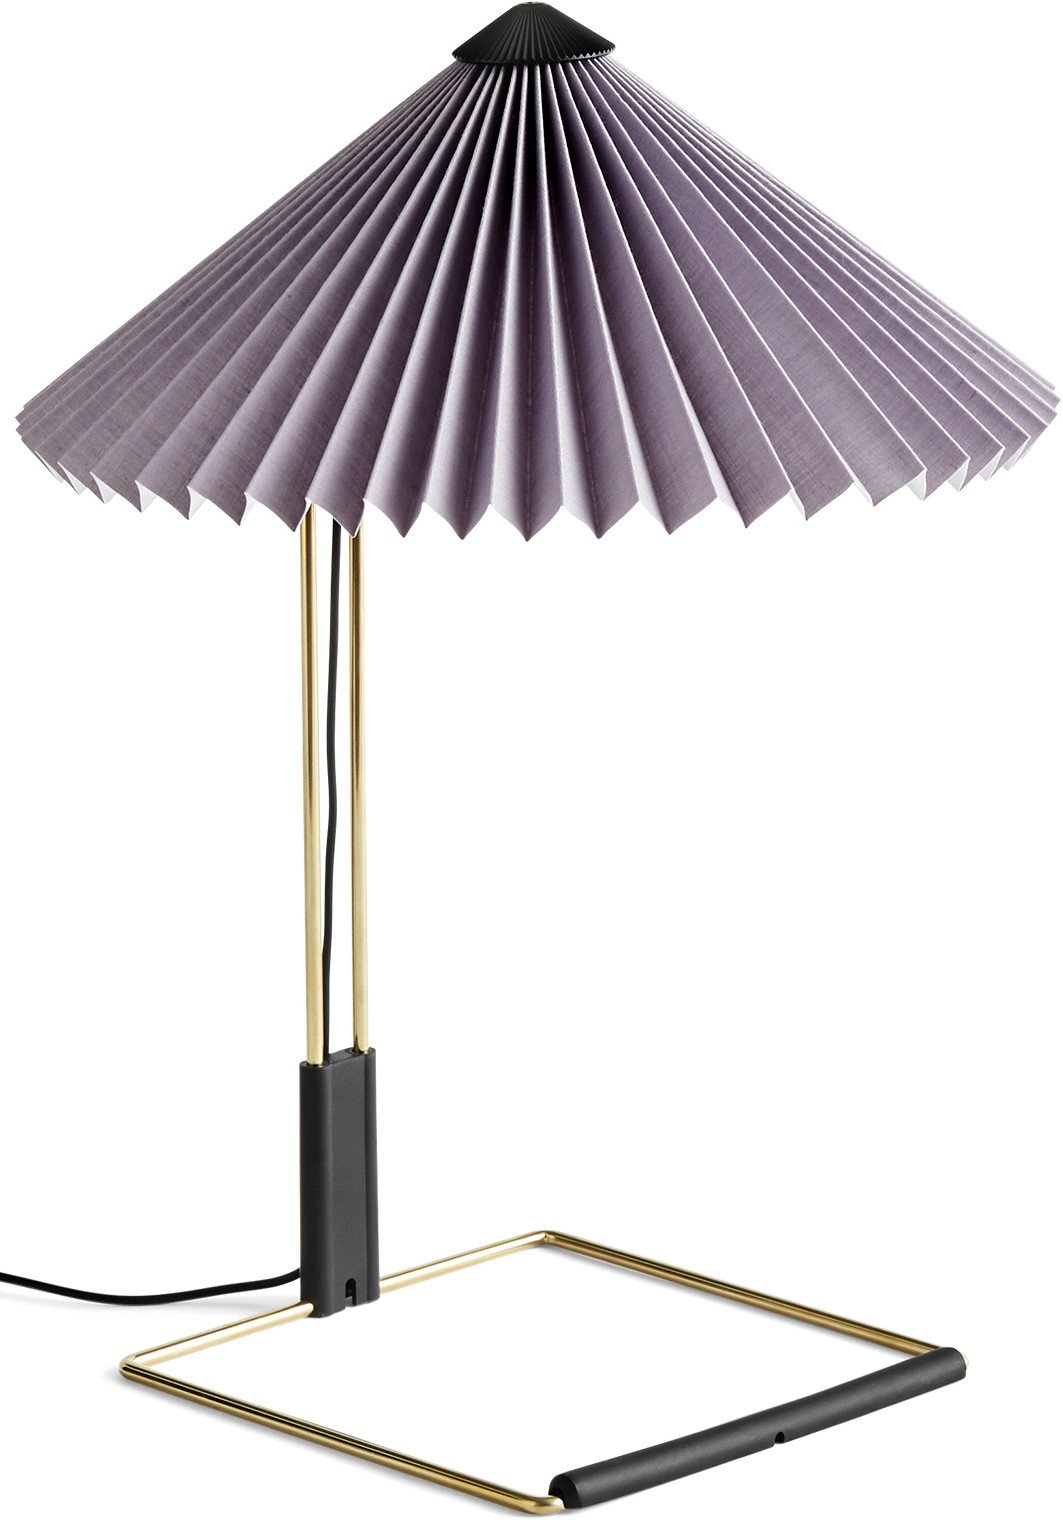 Table Lamp Matin S Ø300 Lavender by I. Sempé for HAY - 502000 - photo